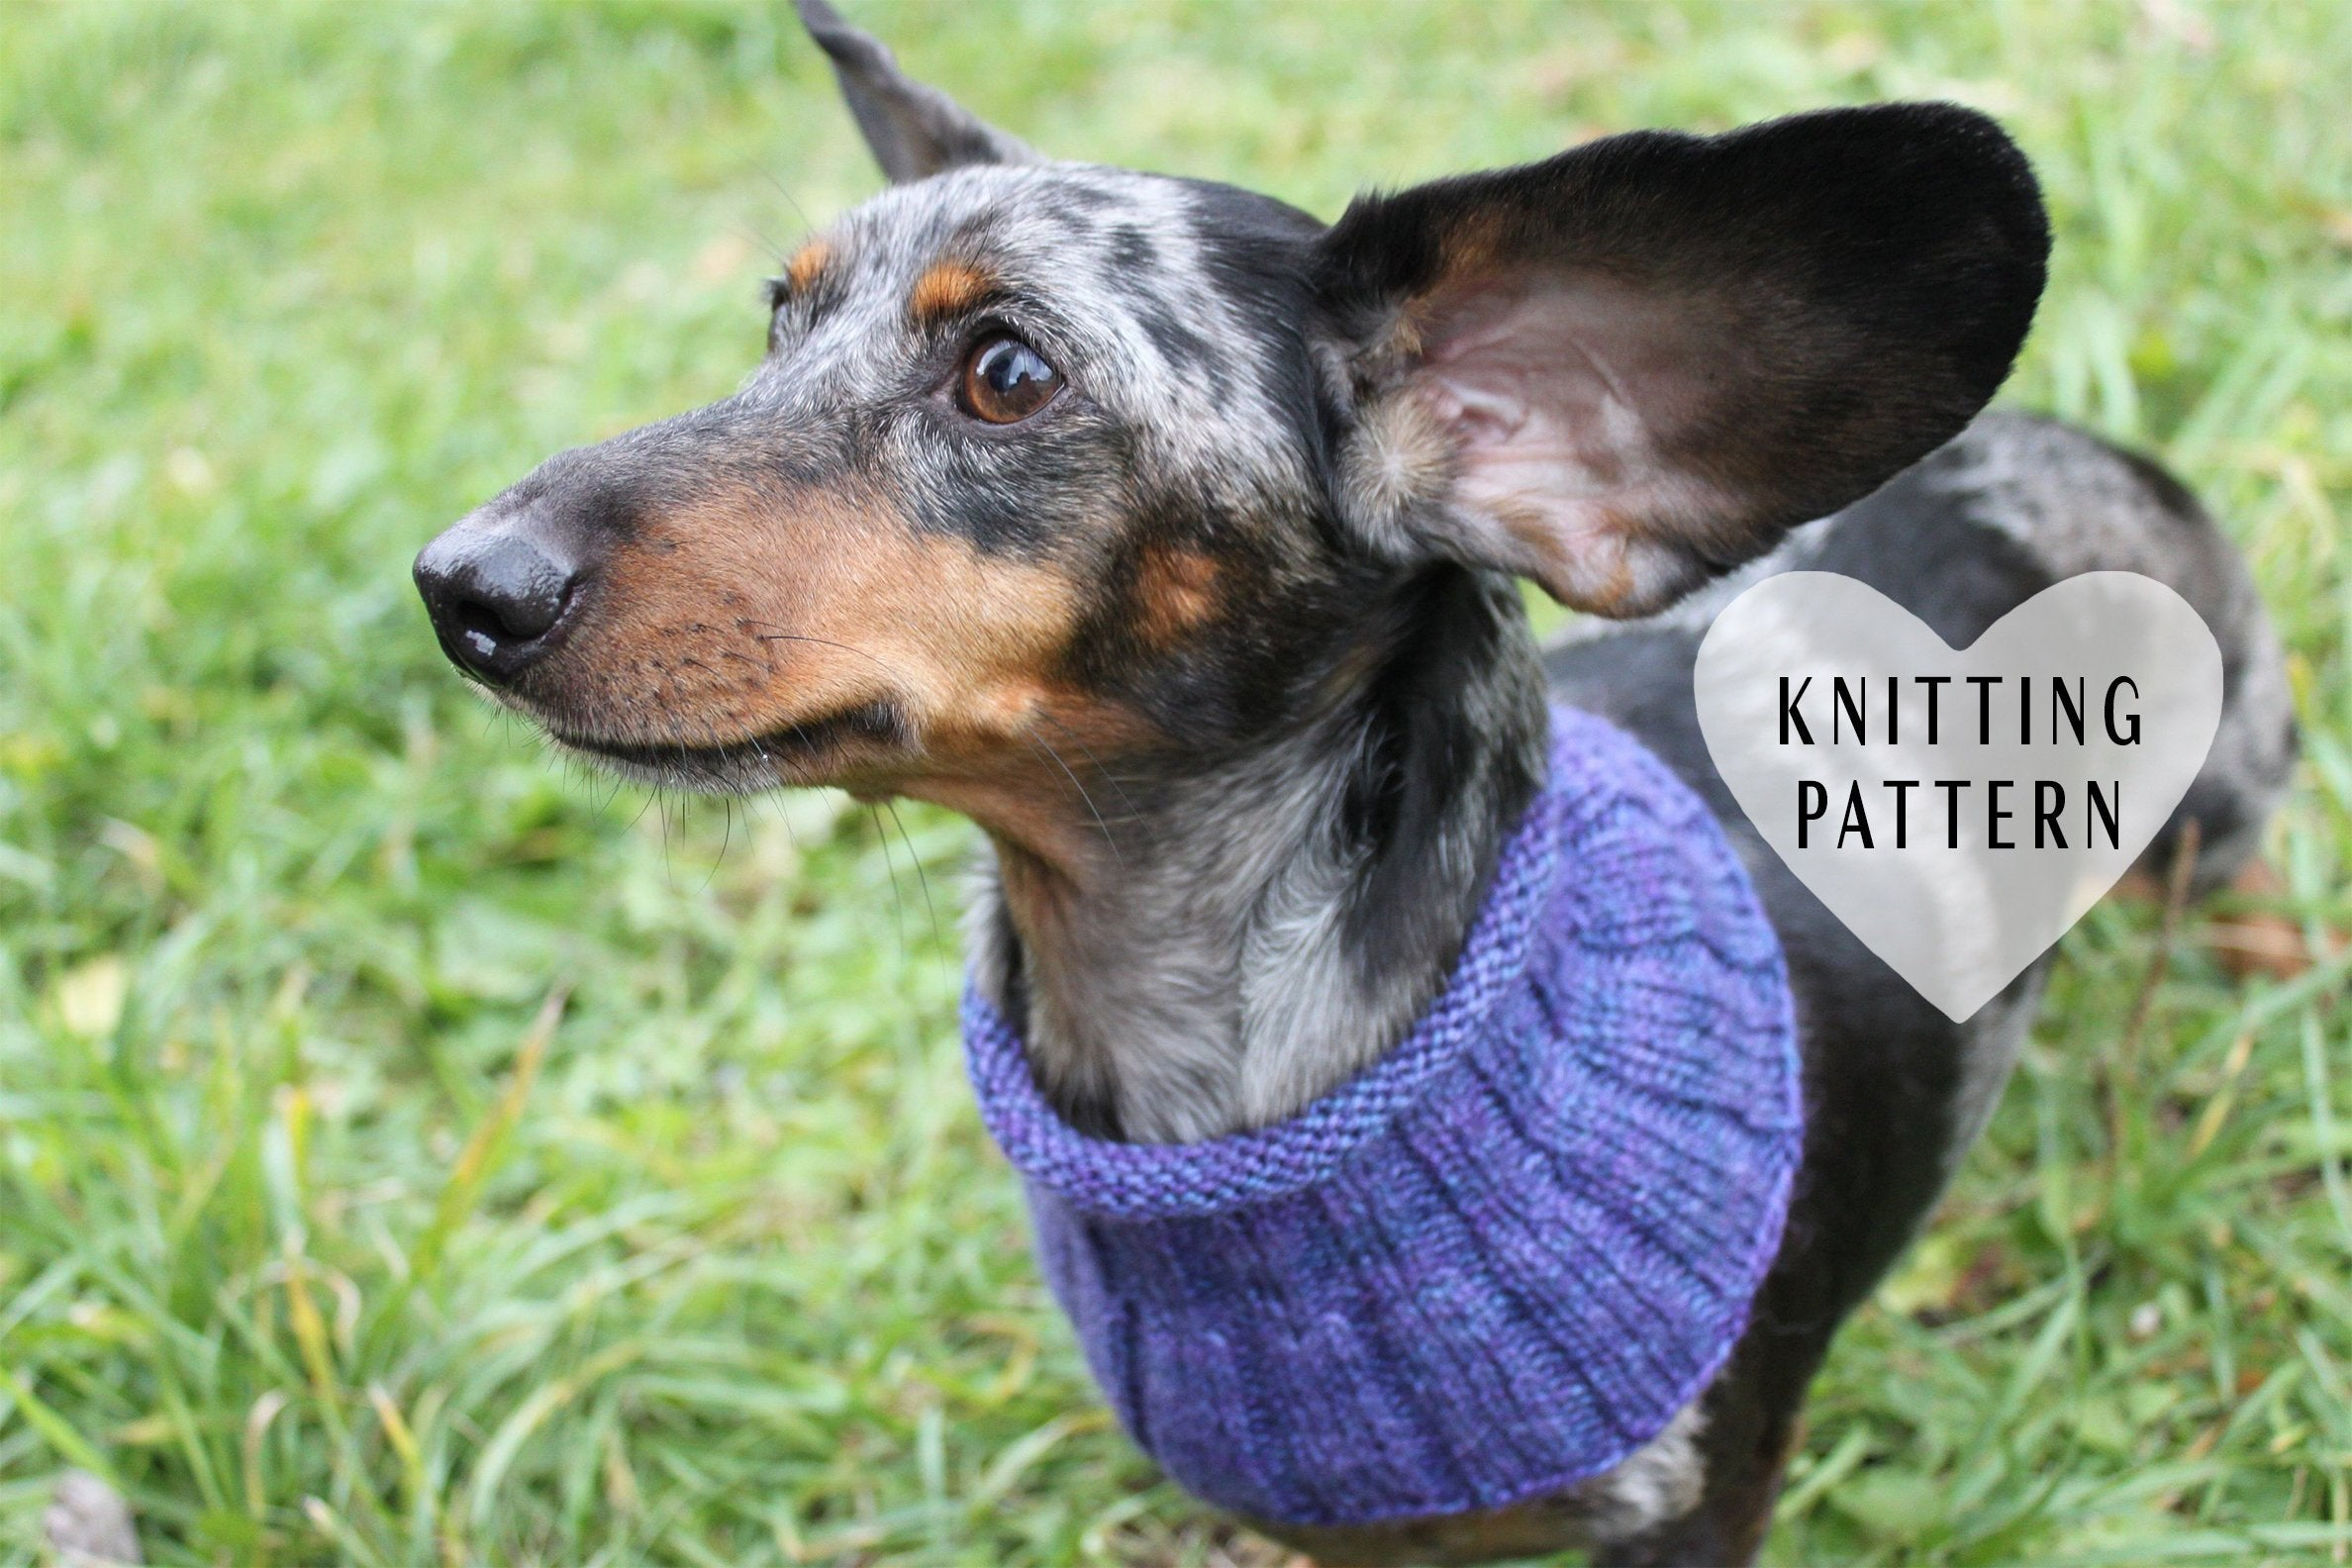 Dachshund Jumper Knitting Pattern Knitting Pattern Small Dog Cowl Neck Warmer Knitted Dog Cowl Dachshund Clothes Dog Clothes Miniatuer Dachshund Cowl Doxie Neck Warmer